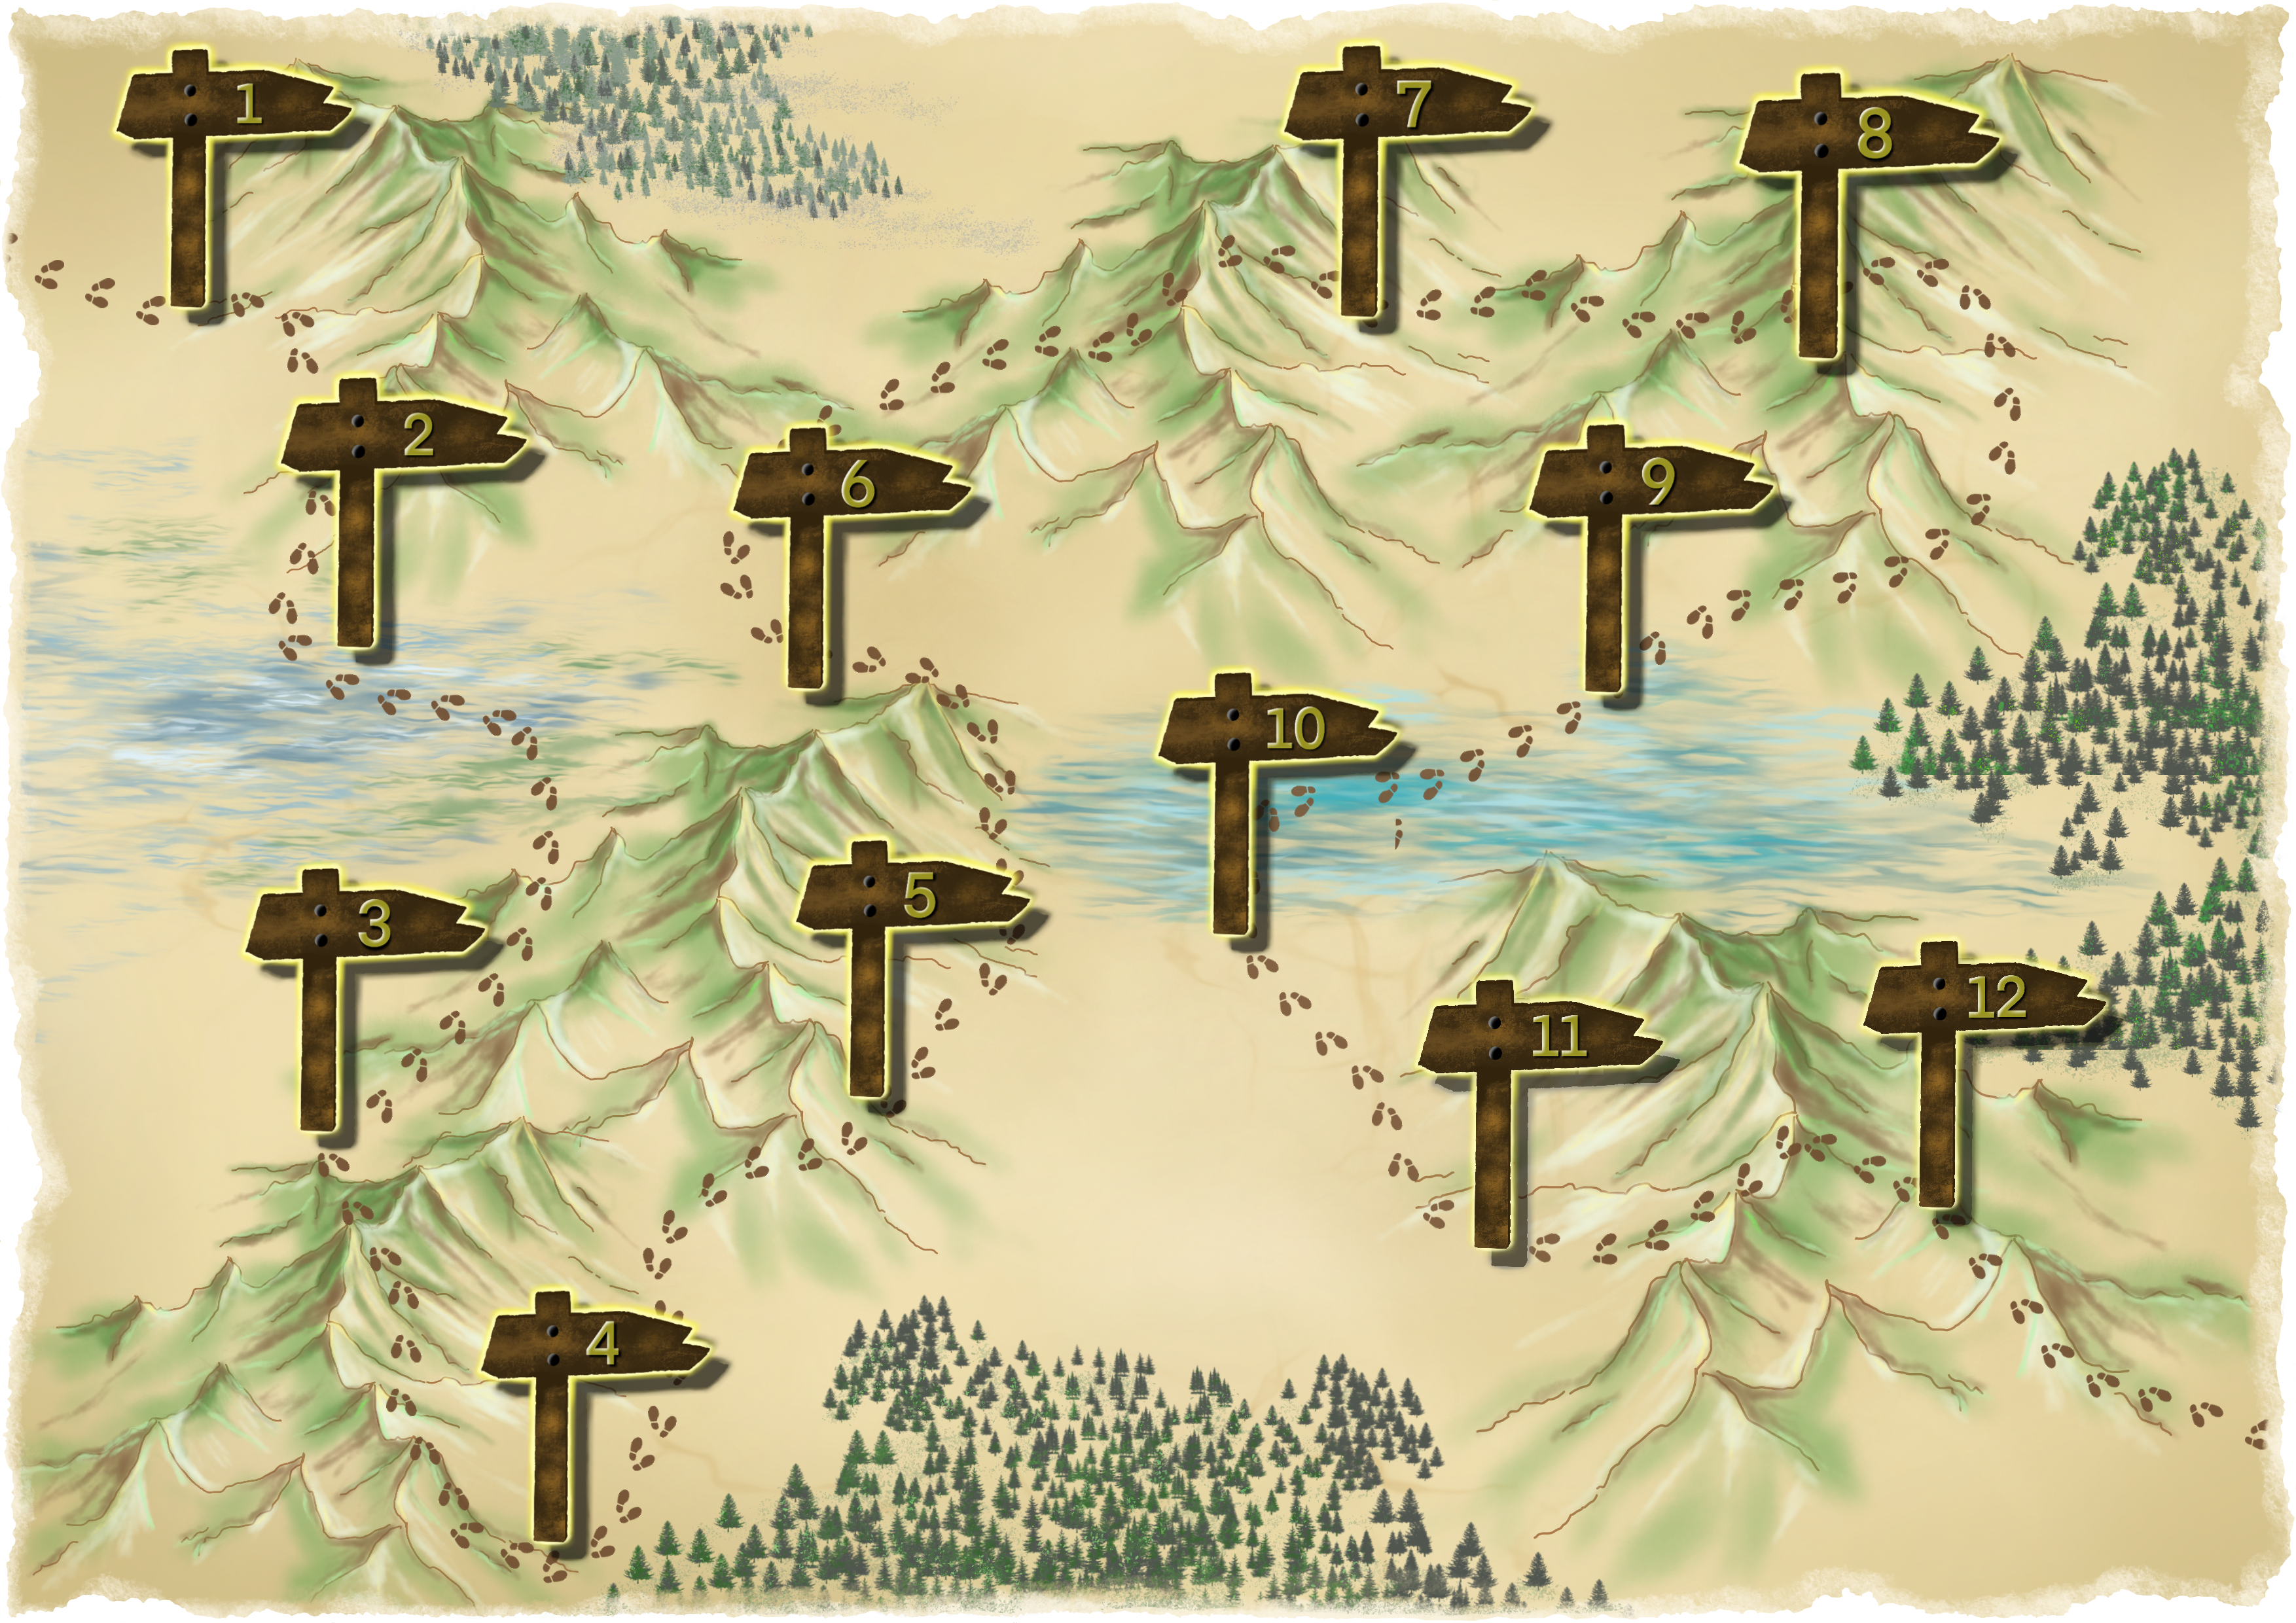 A map of the Mountains of Metaphor